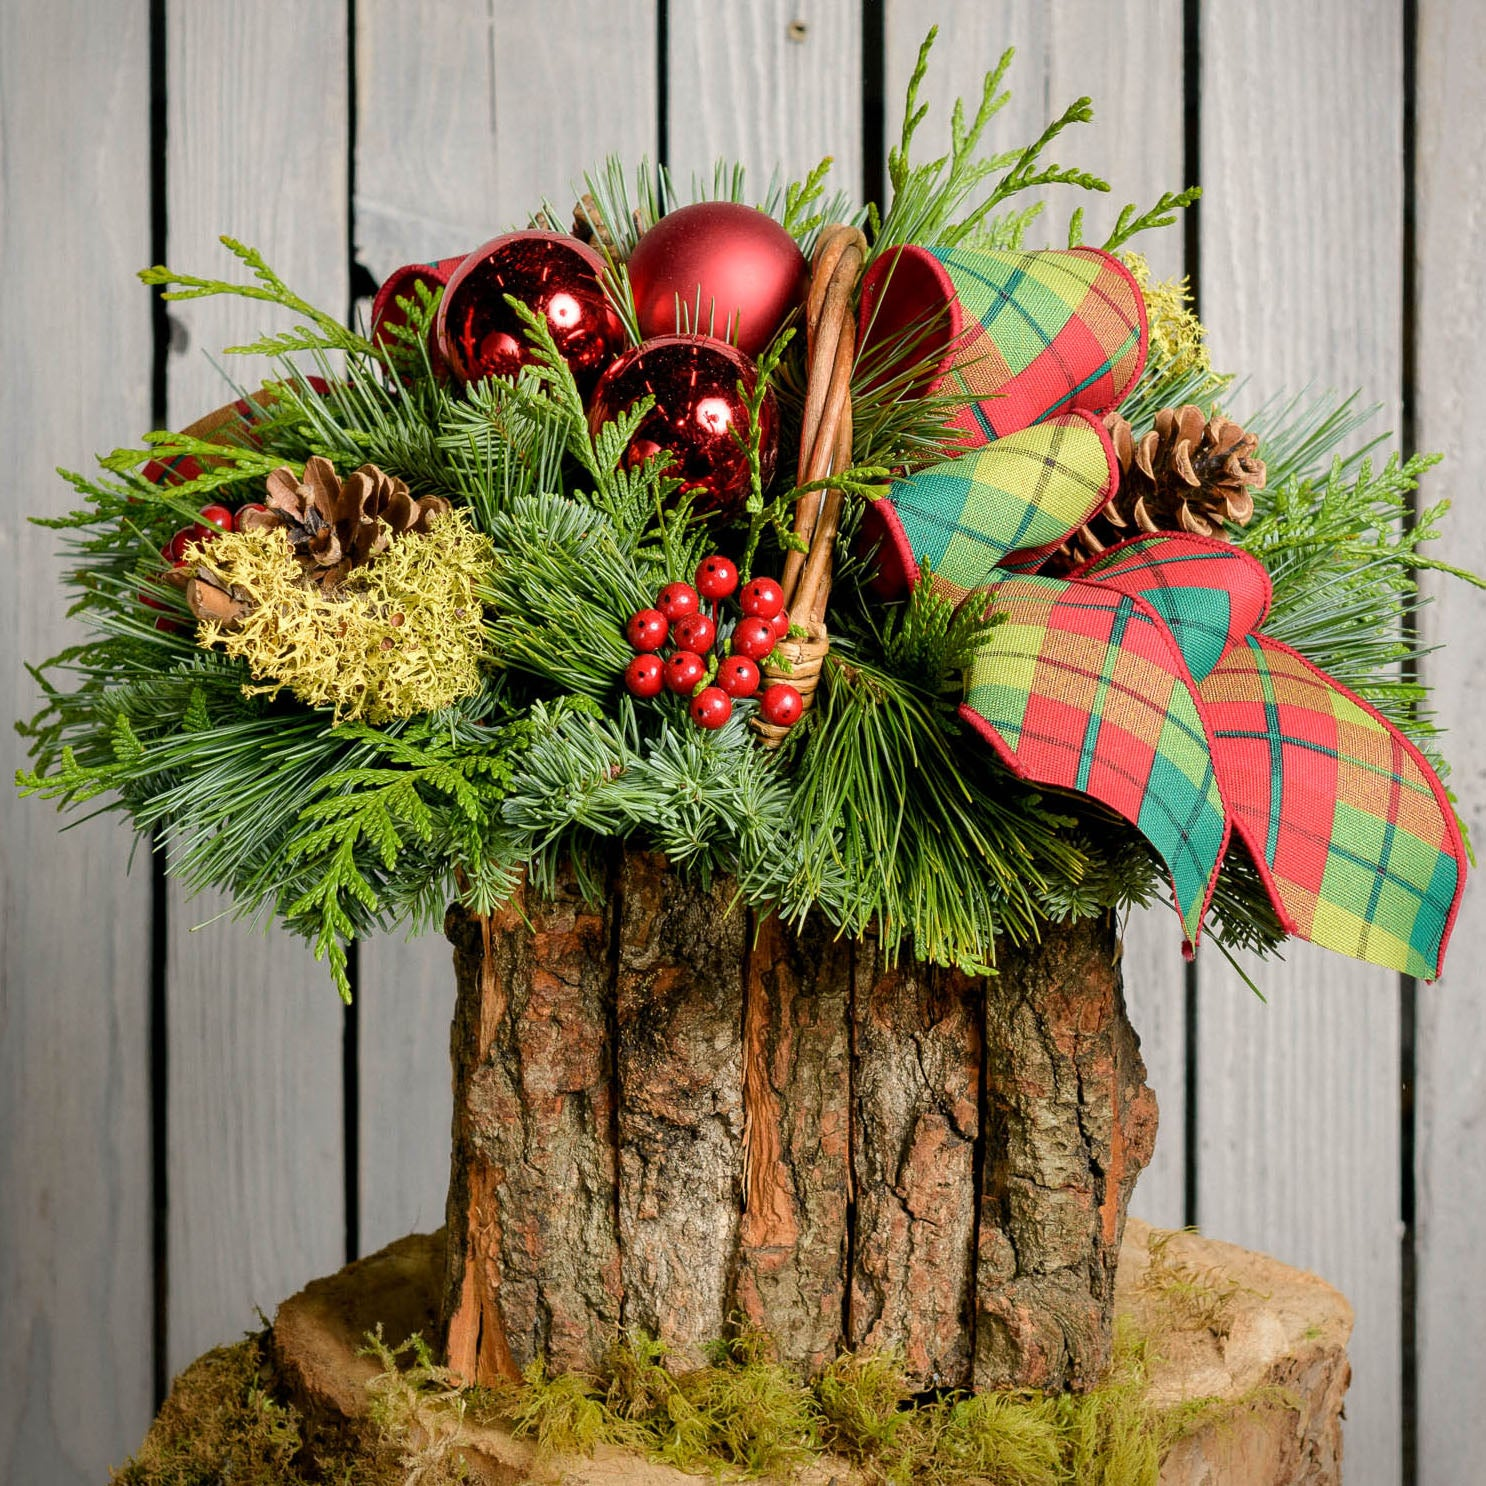 Fresh evergreen centerpiece with red ornament and berries and a plaid bow in a bark basket close up